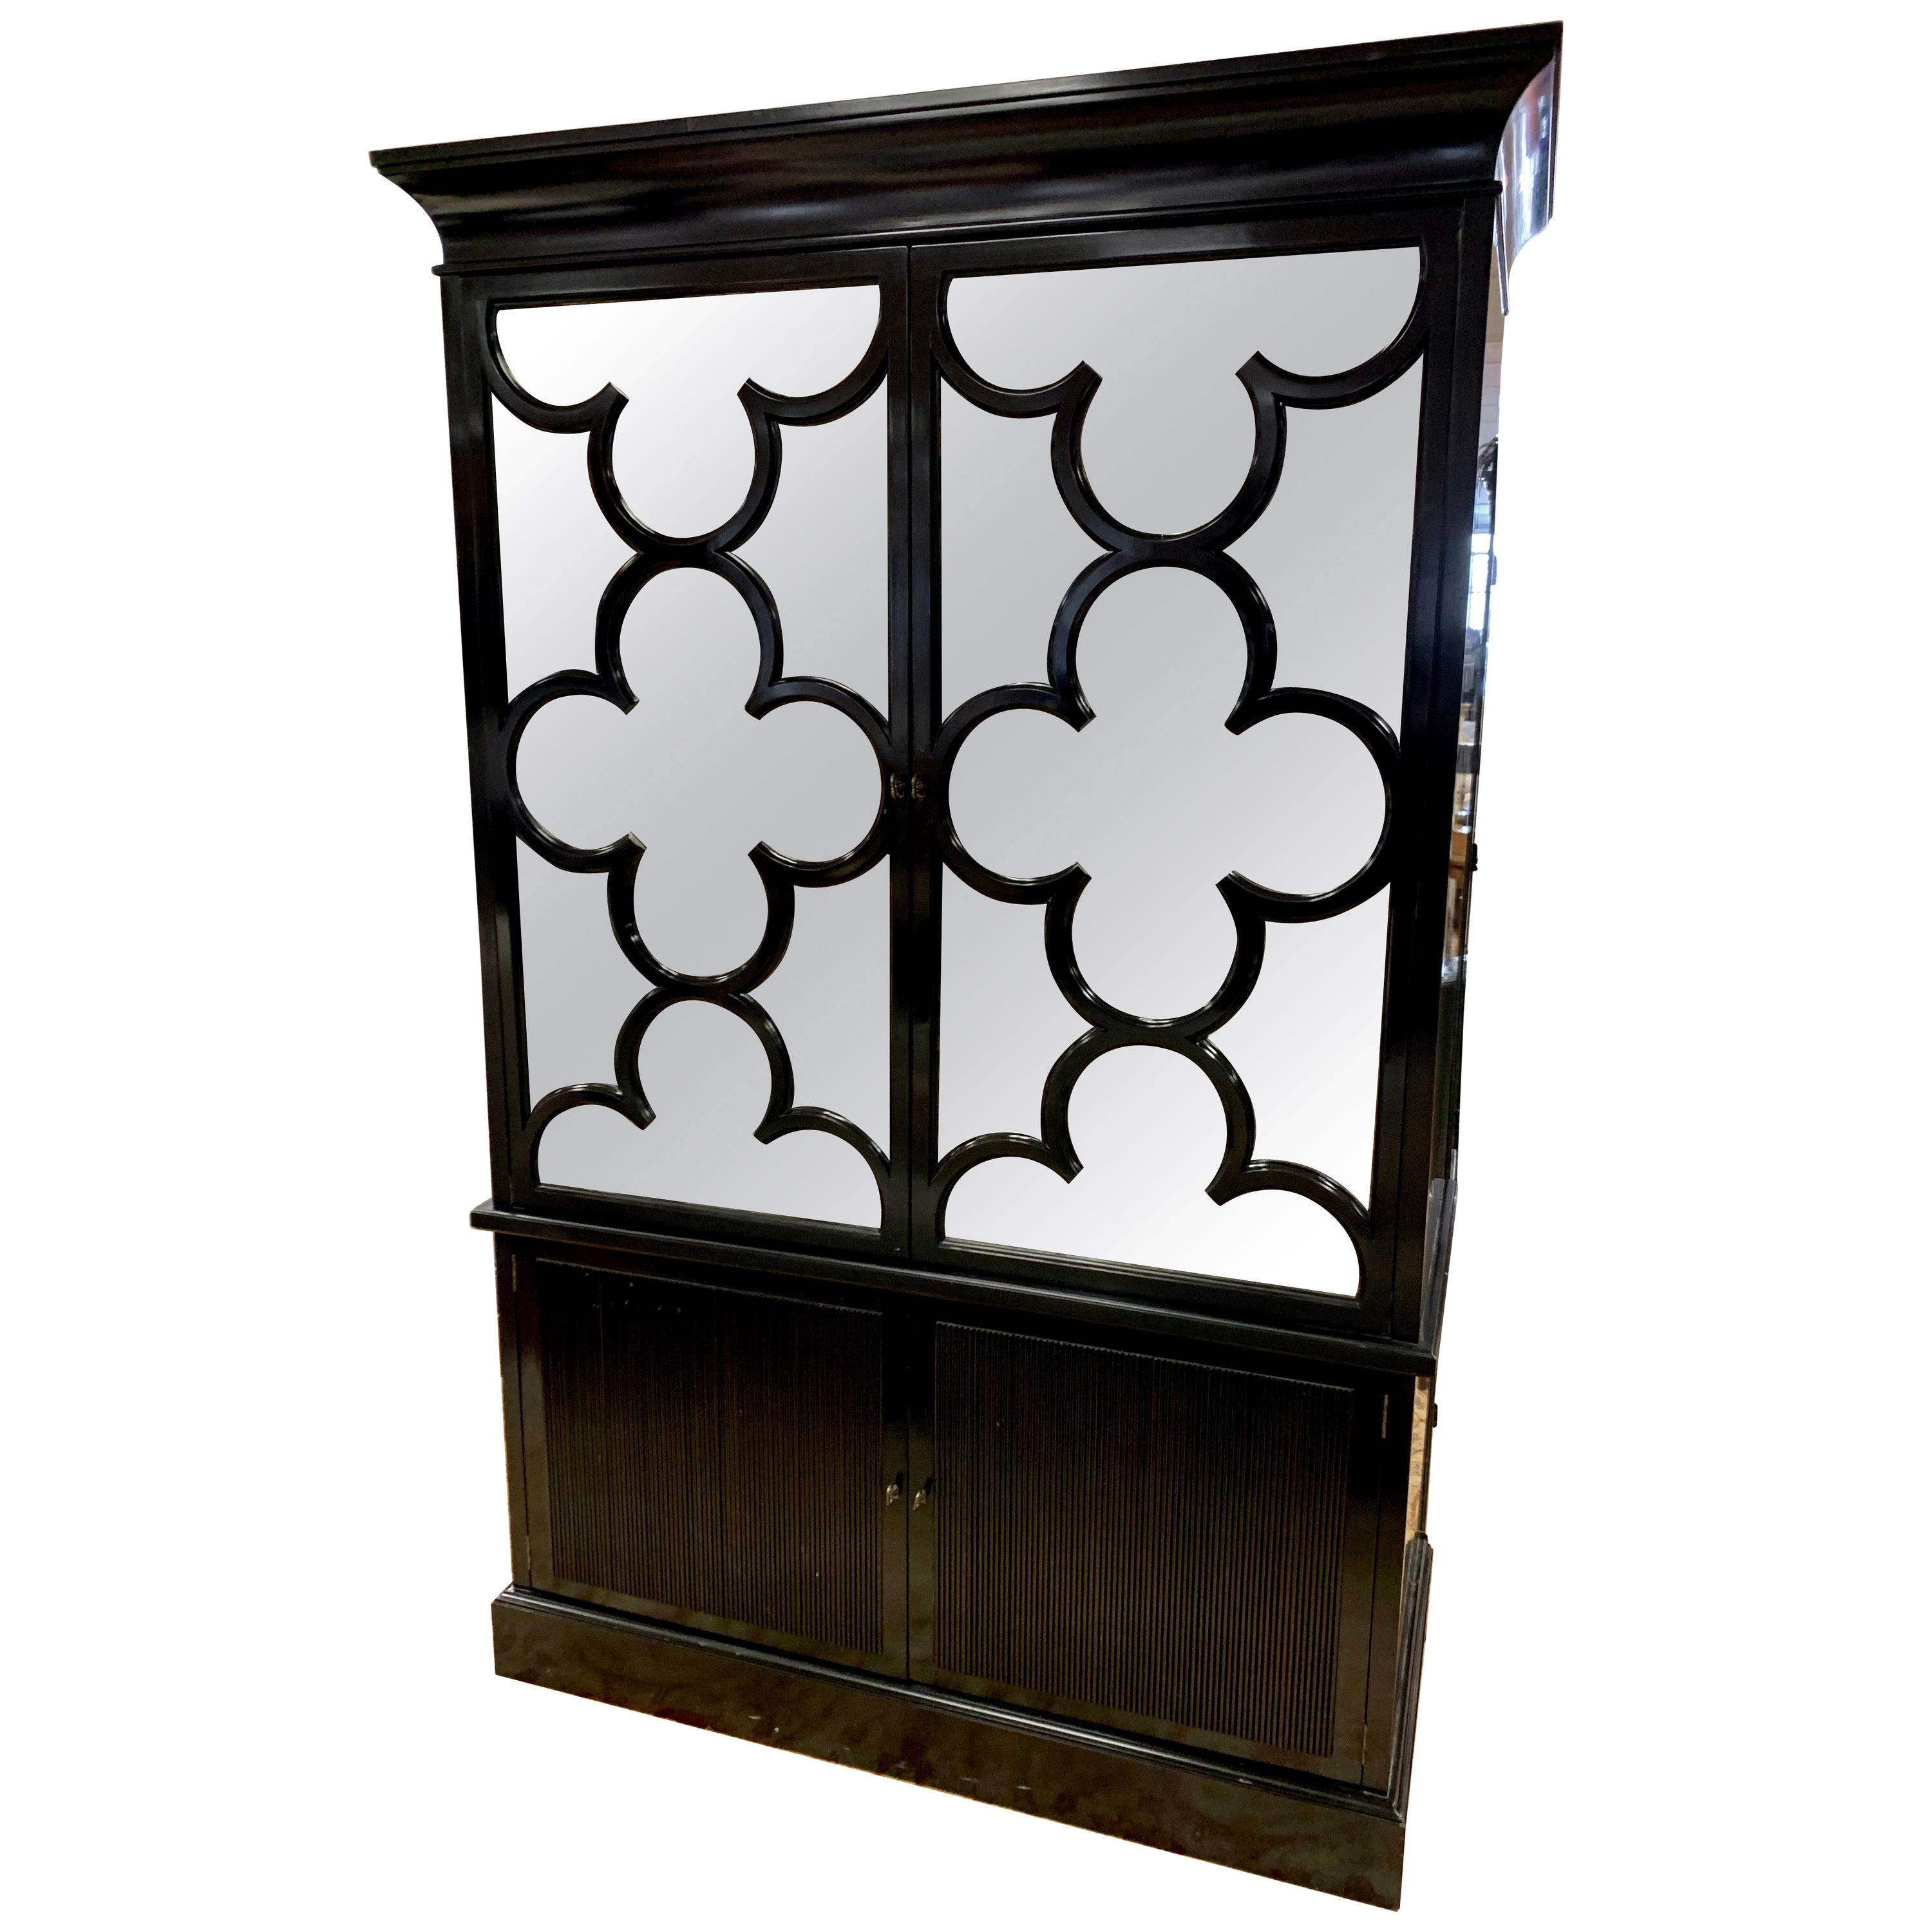 Barbara Barry Baker Furniture Black Lacquered Mirrored Wardrobe Cabinet Armoire